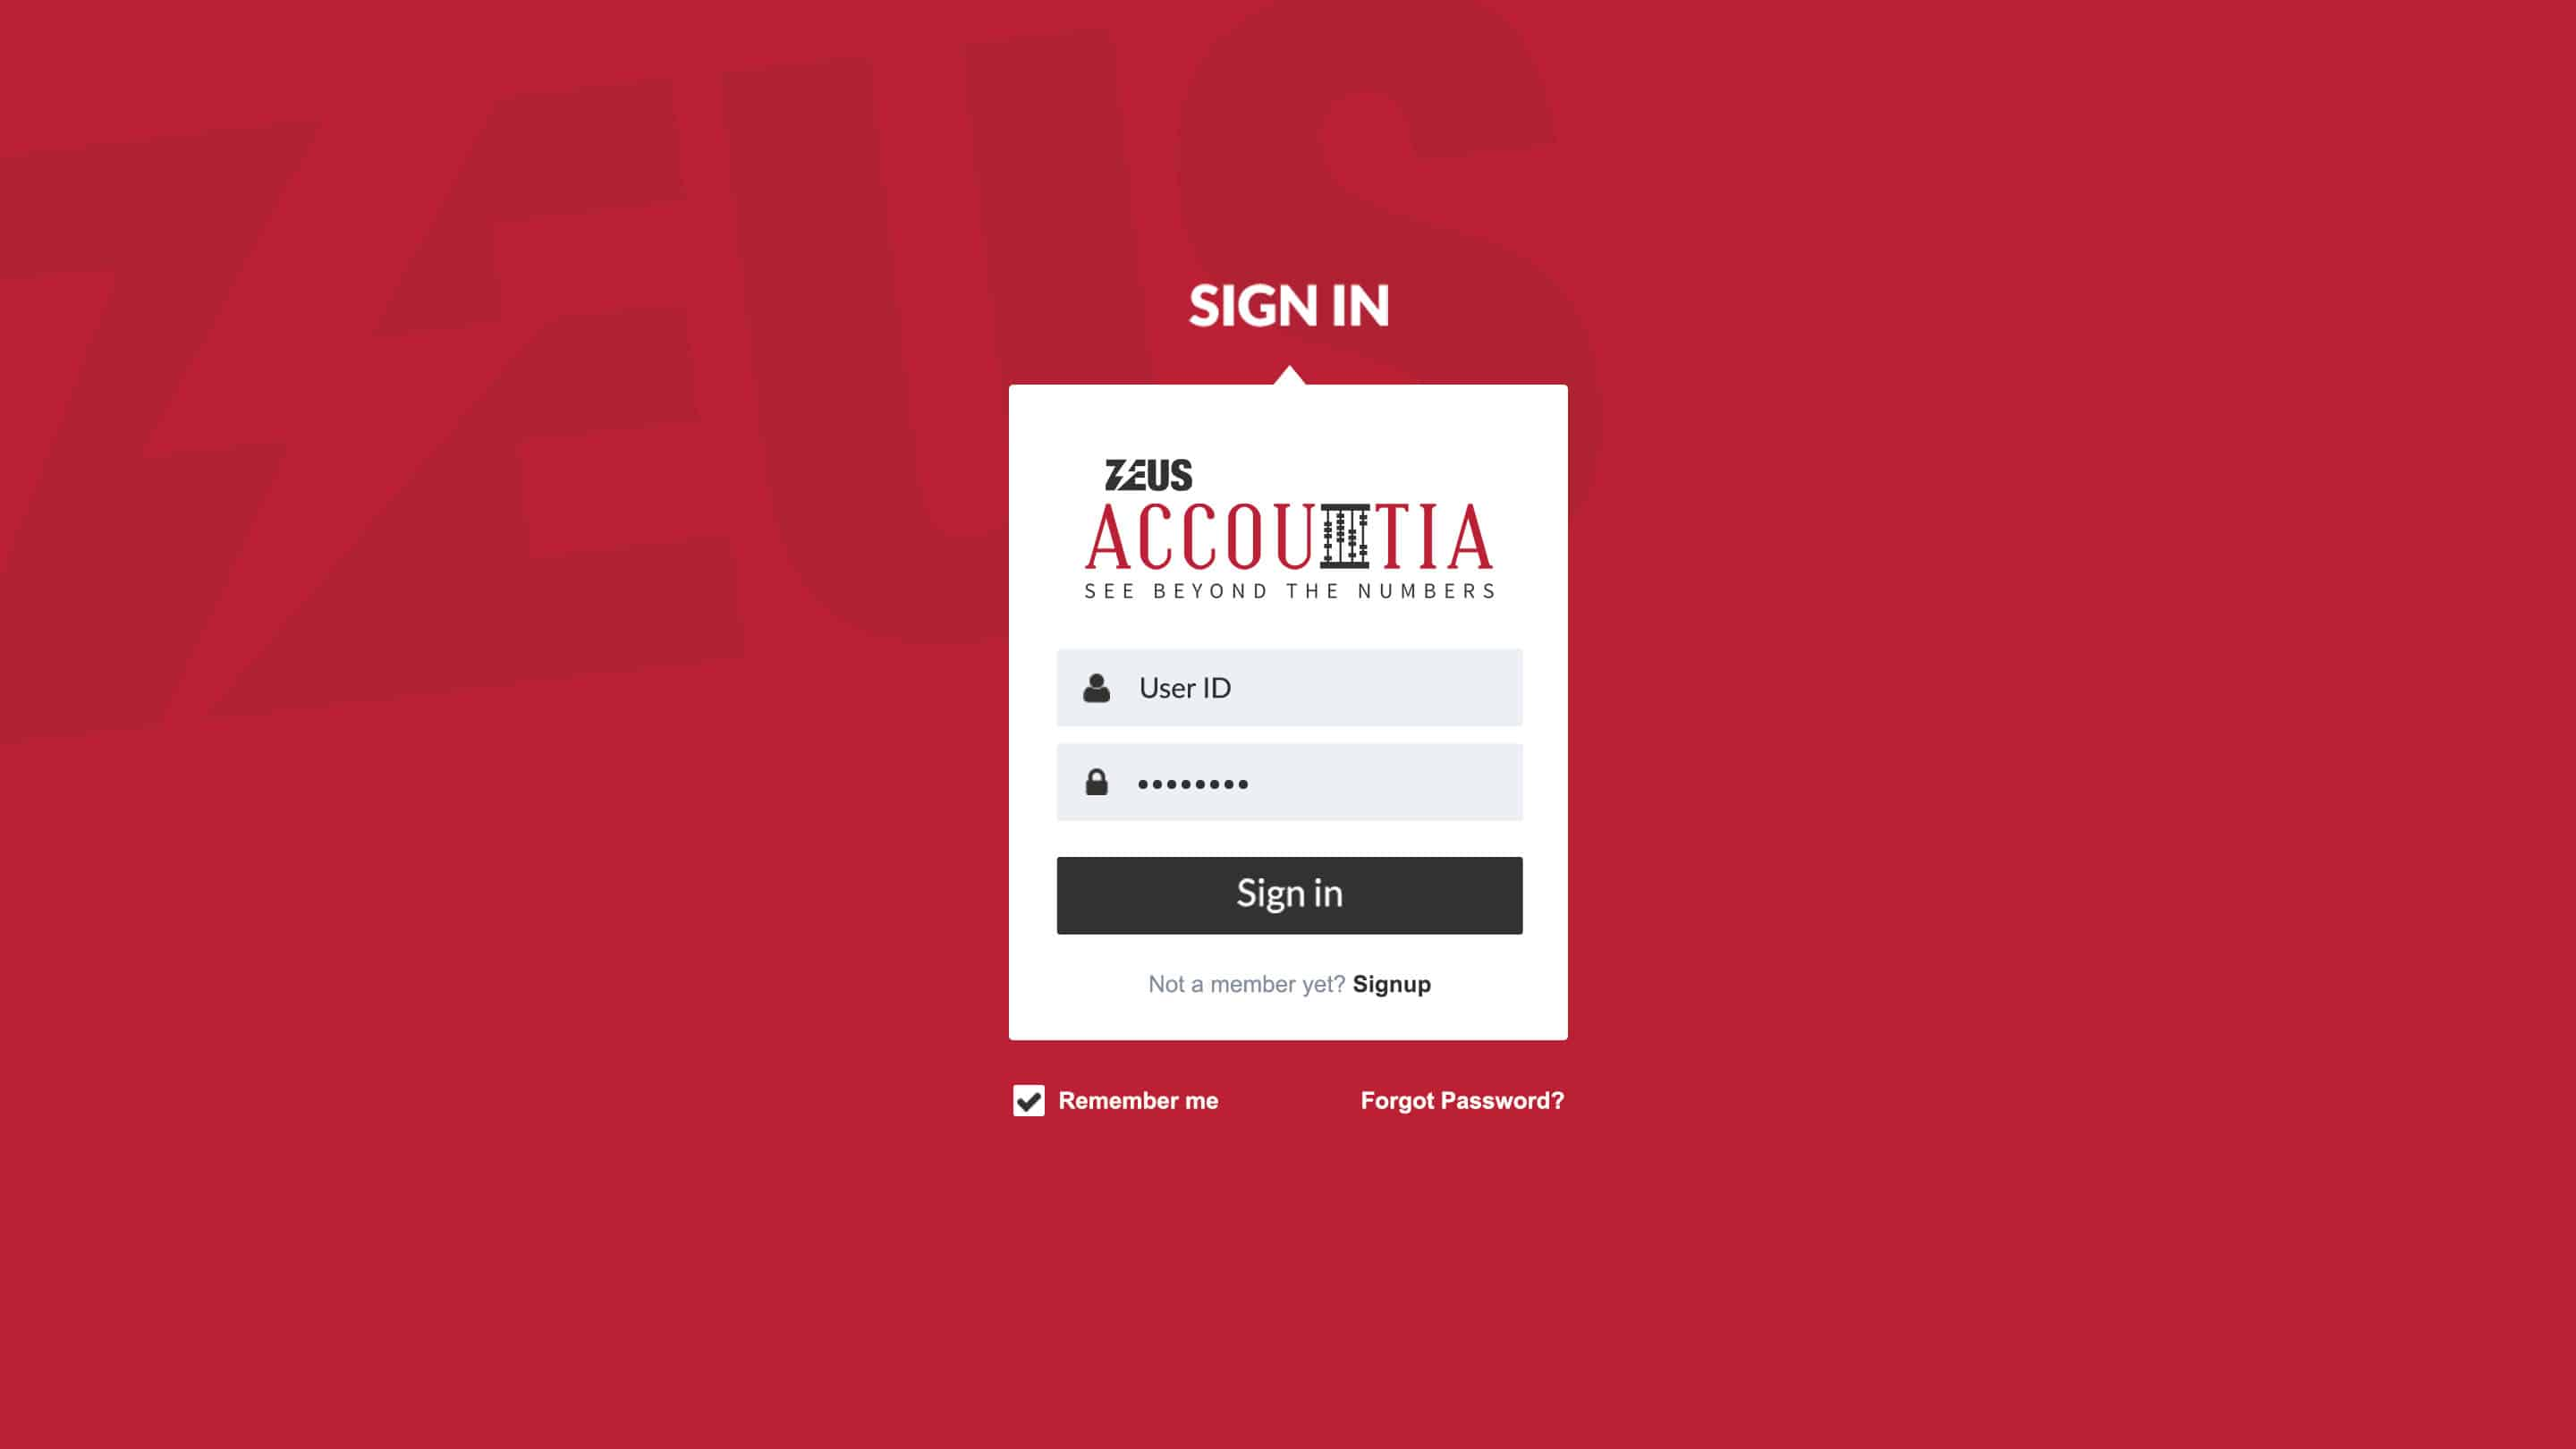 Zeus Accountia-Login Screen